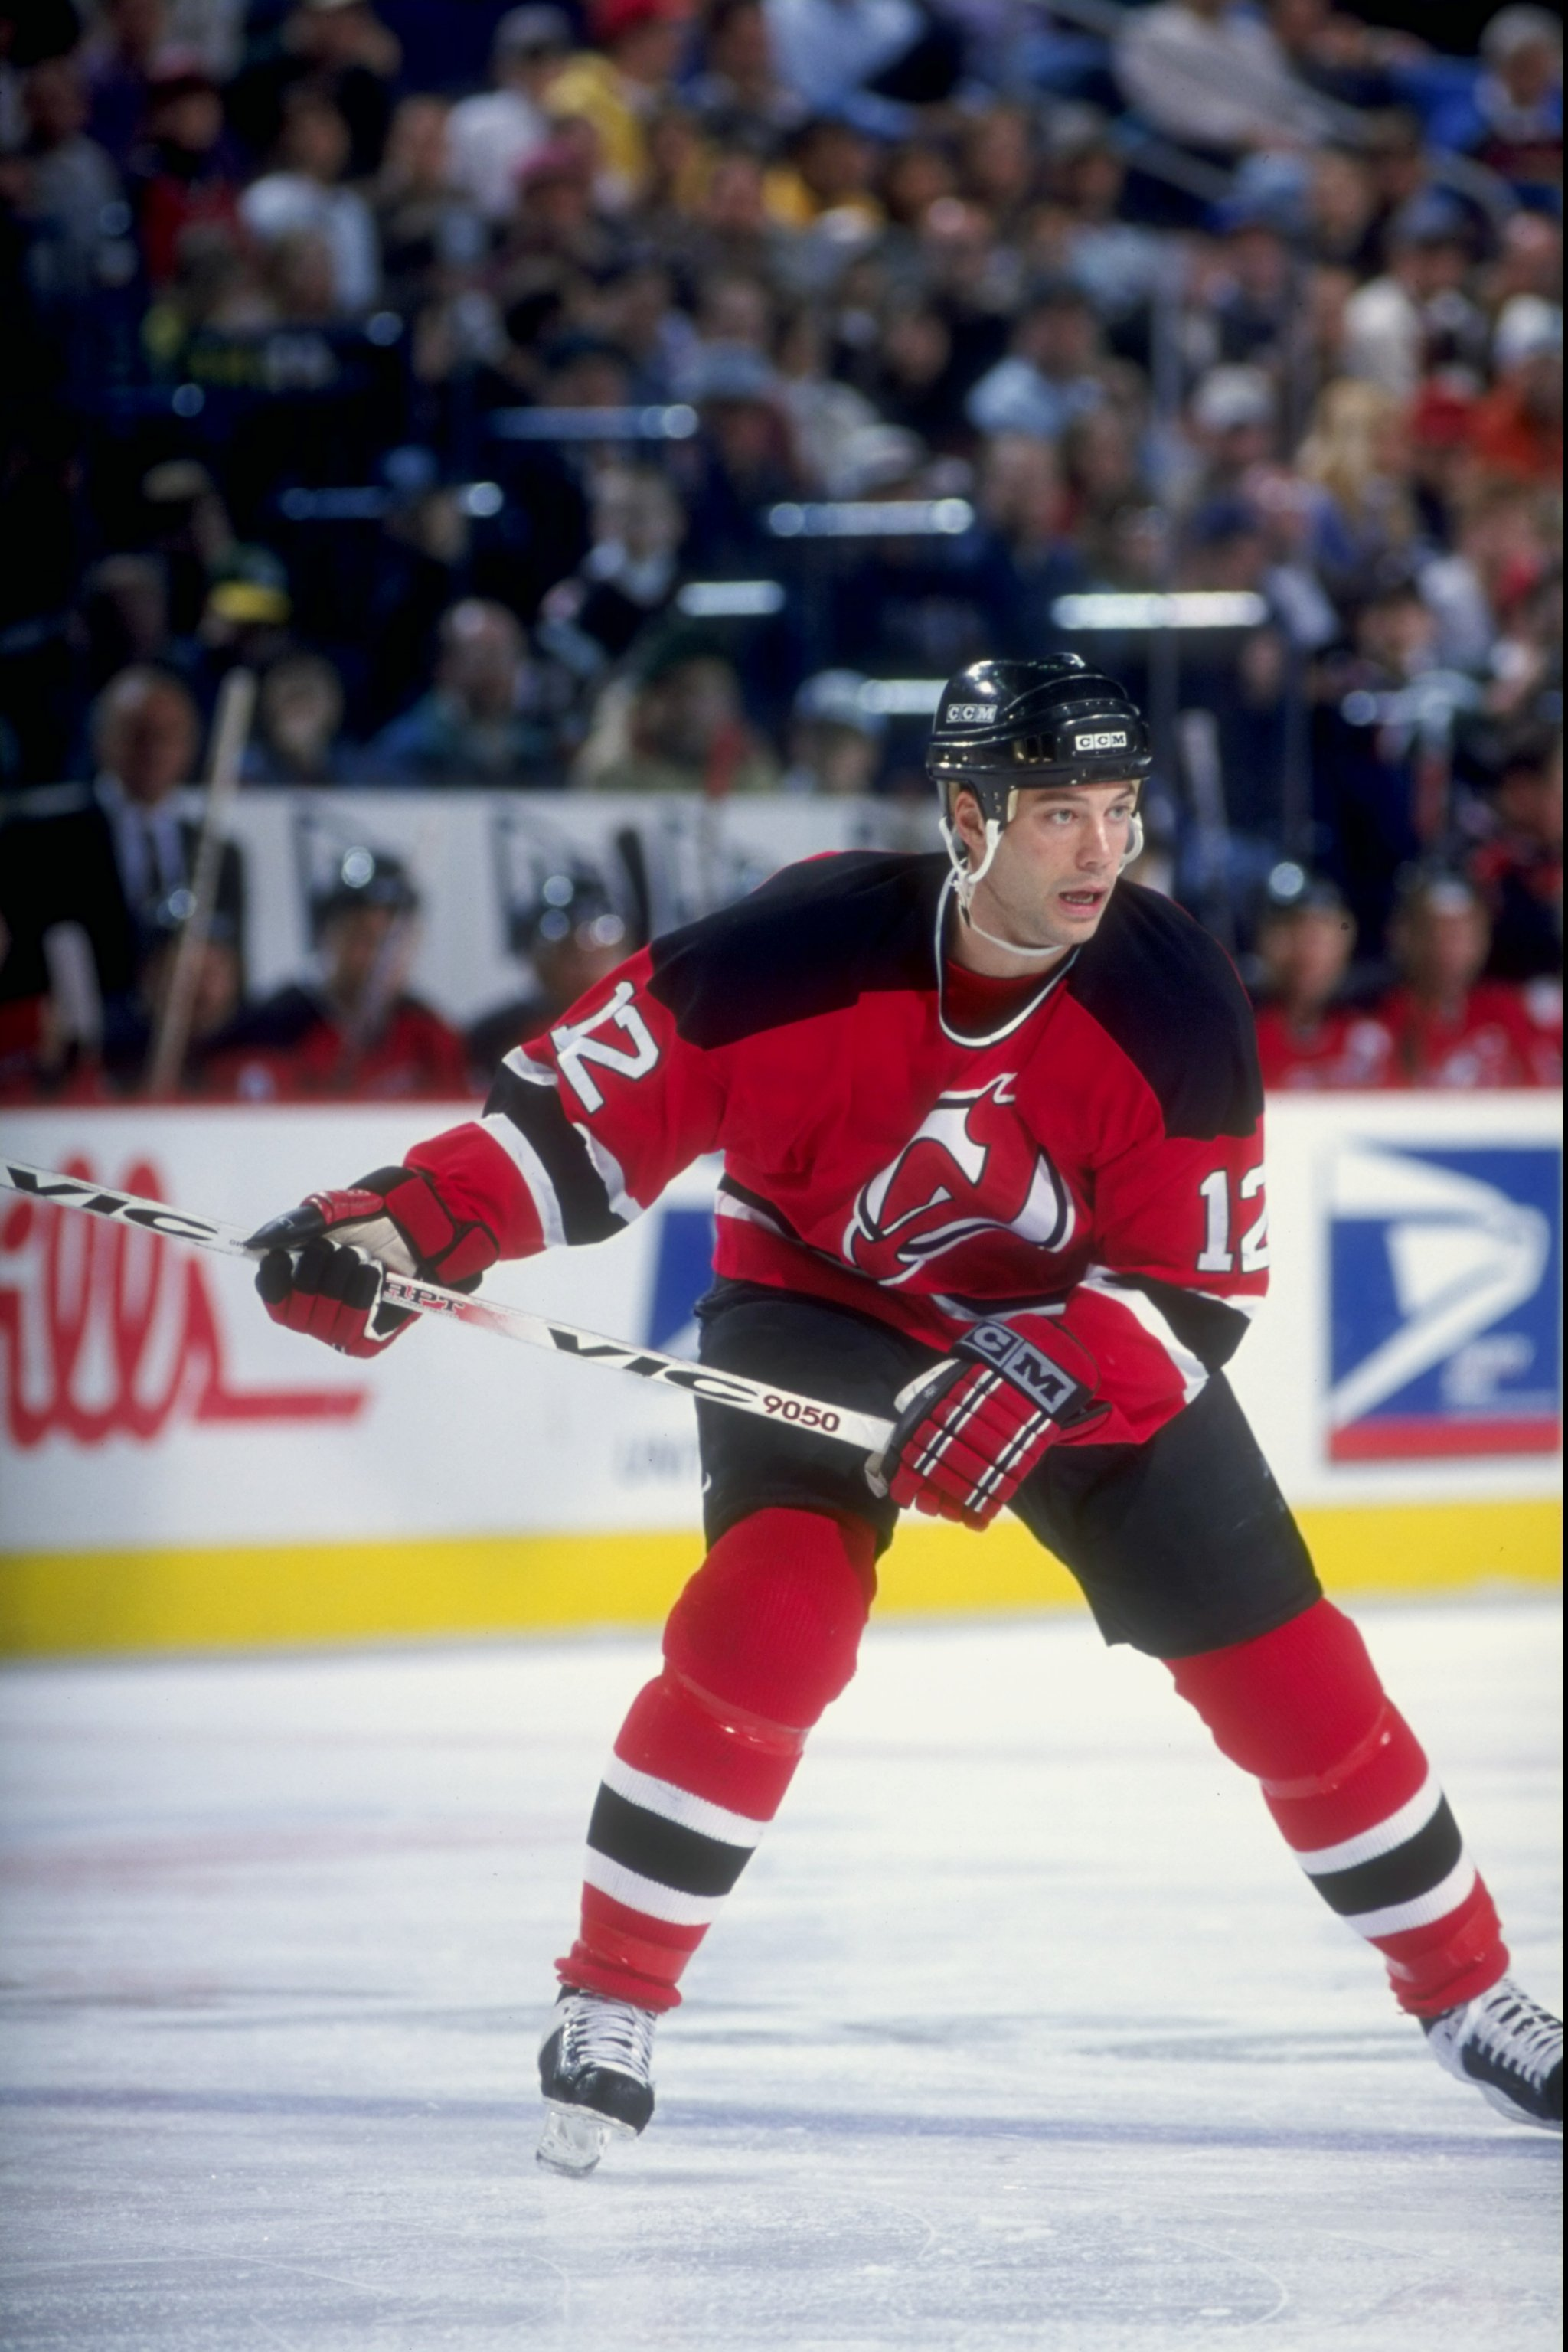 1995 New Jersey Devils: Their Dominant Path to the Stanley